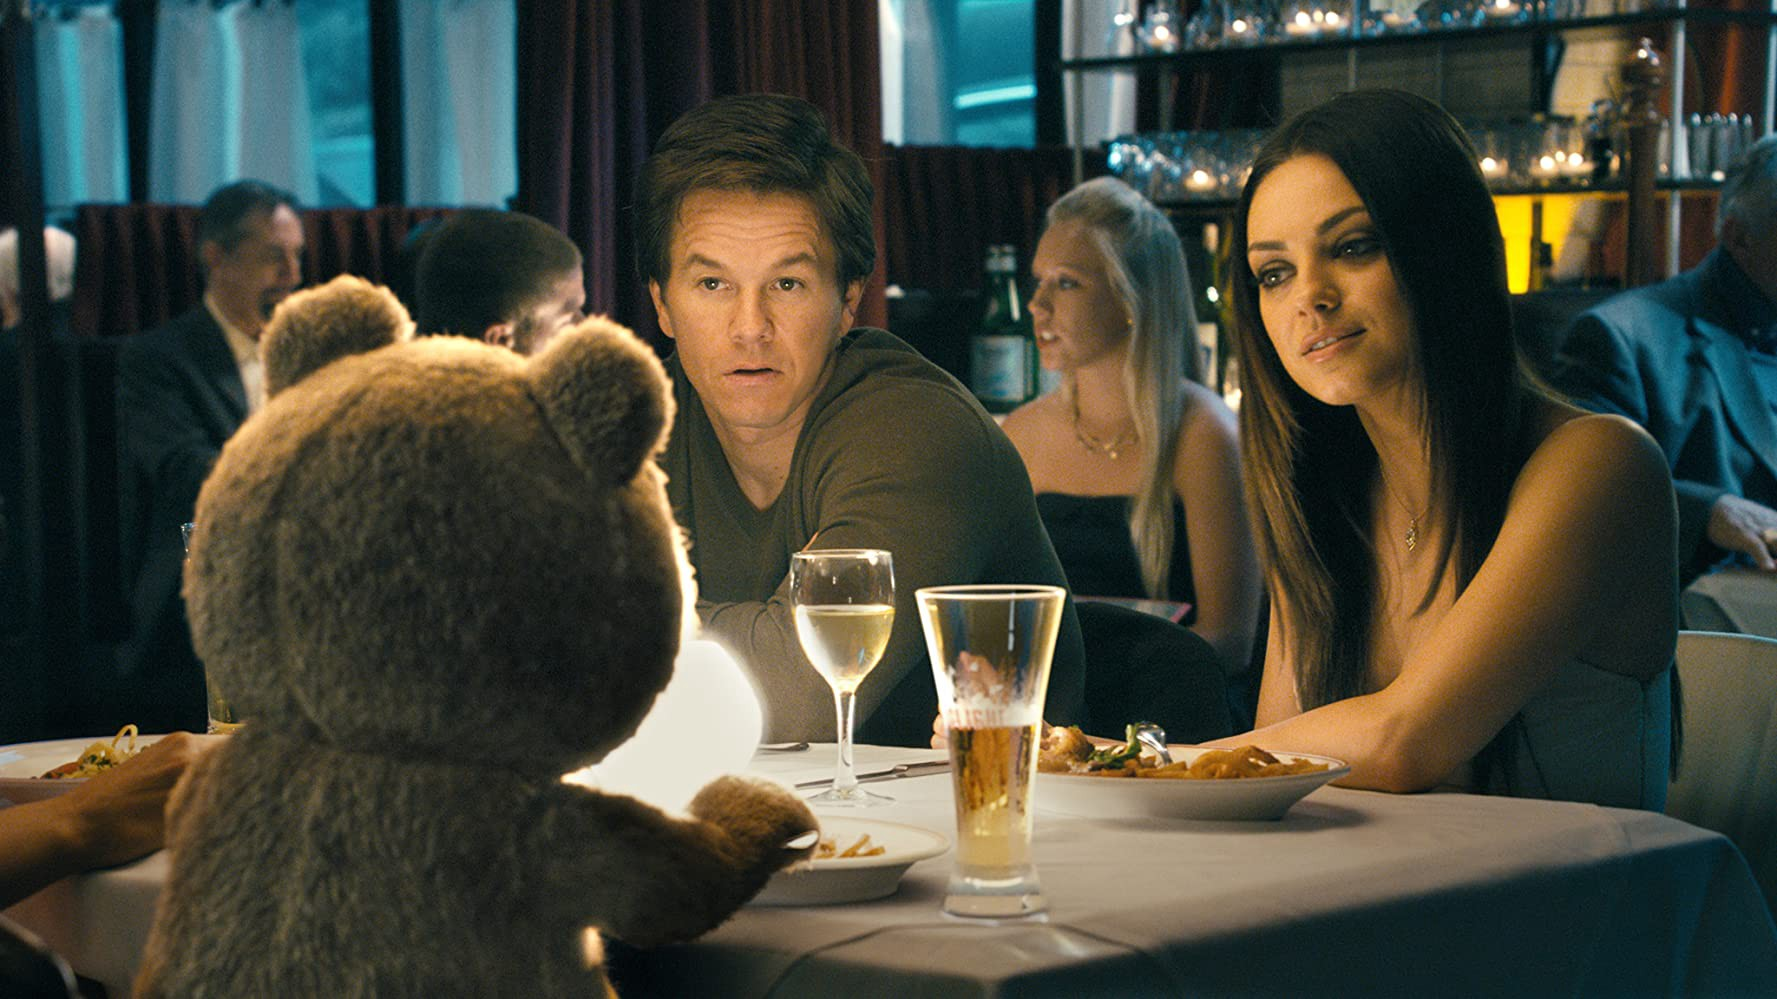 watch ted full movie online free streaming